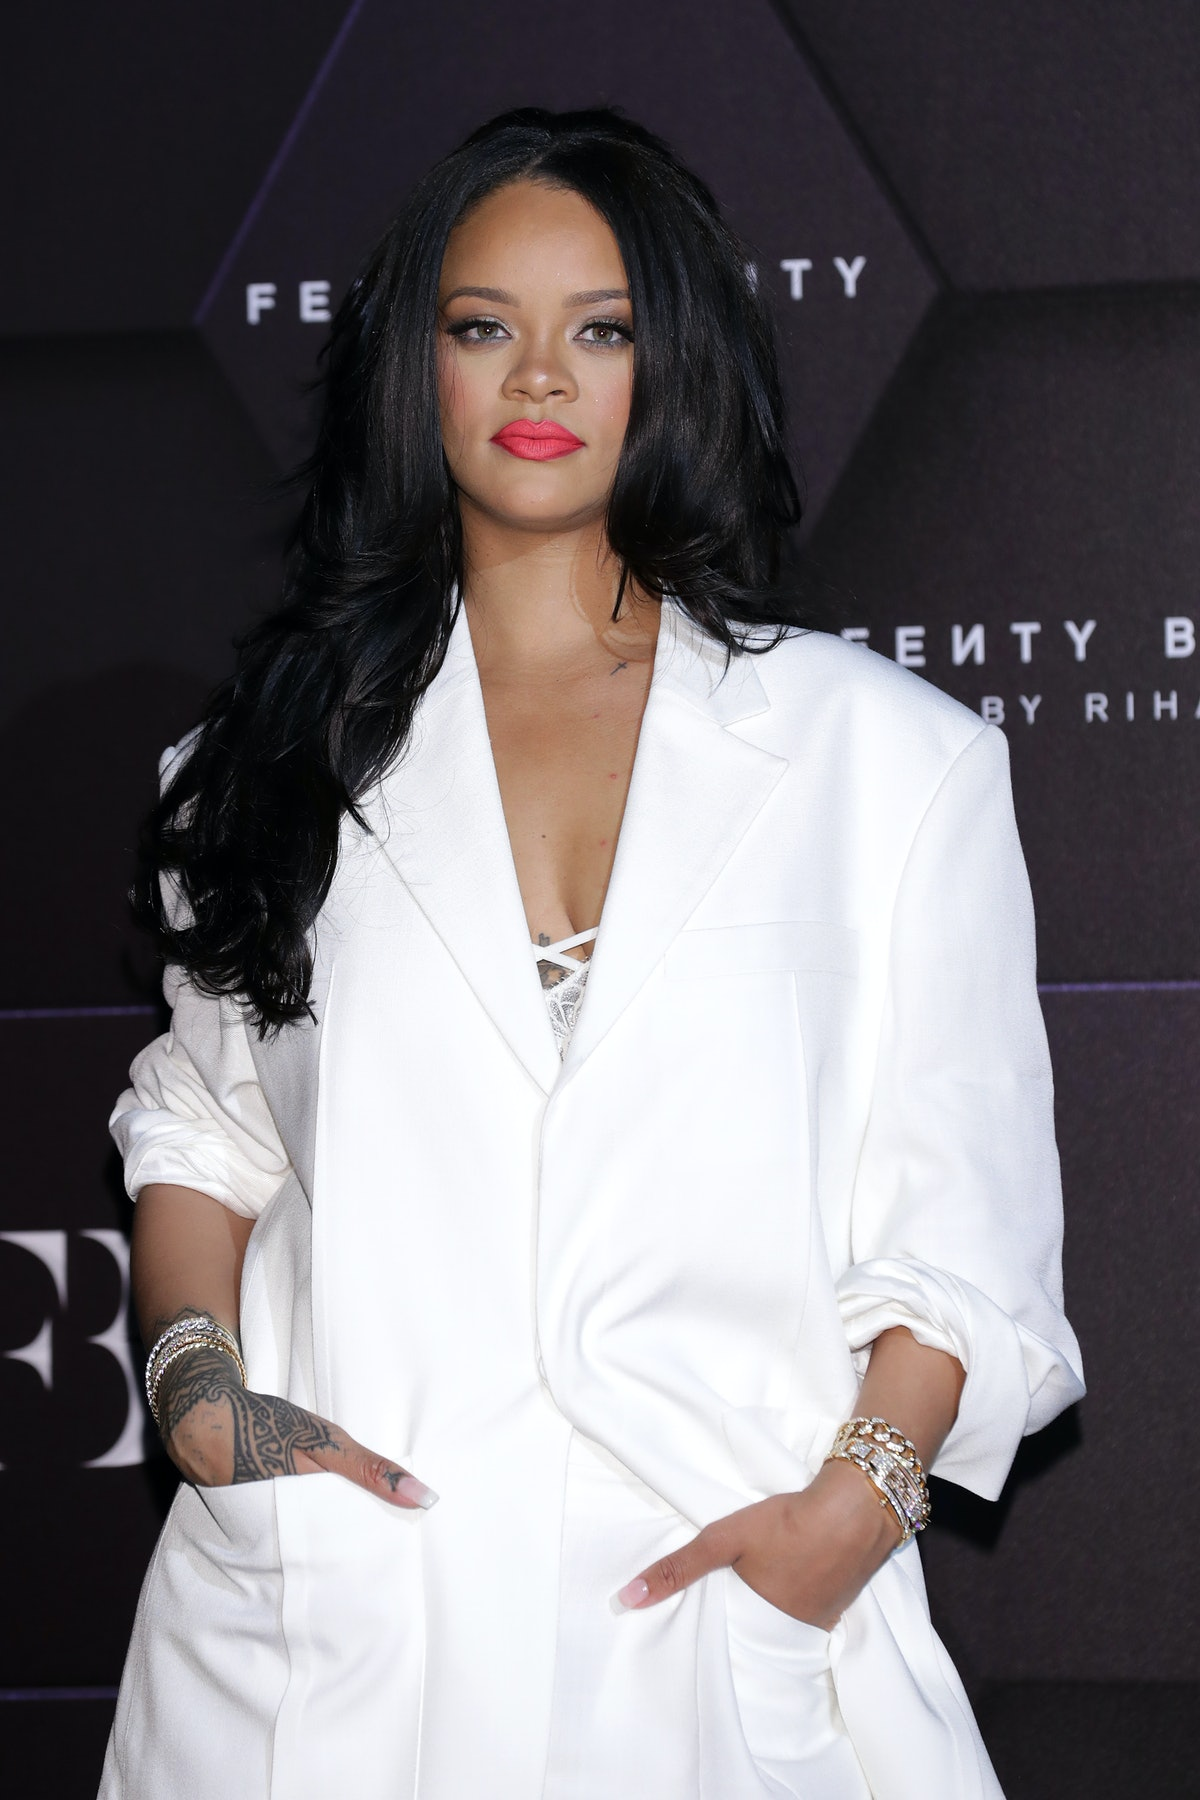 Rihanna's Fenty Beauty is arguably one of the most popular celebrity beauty brands.